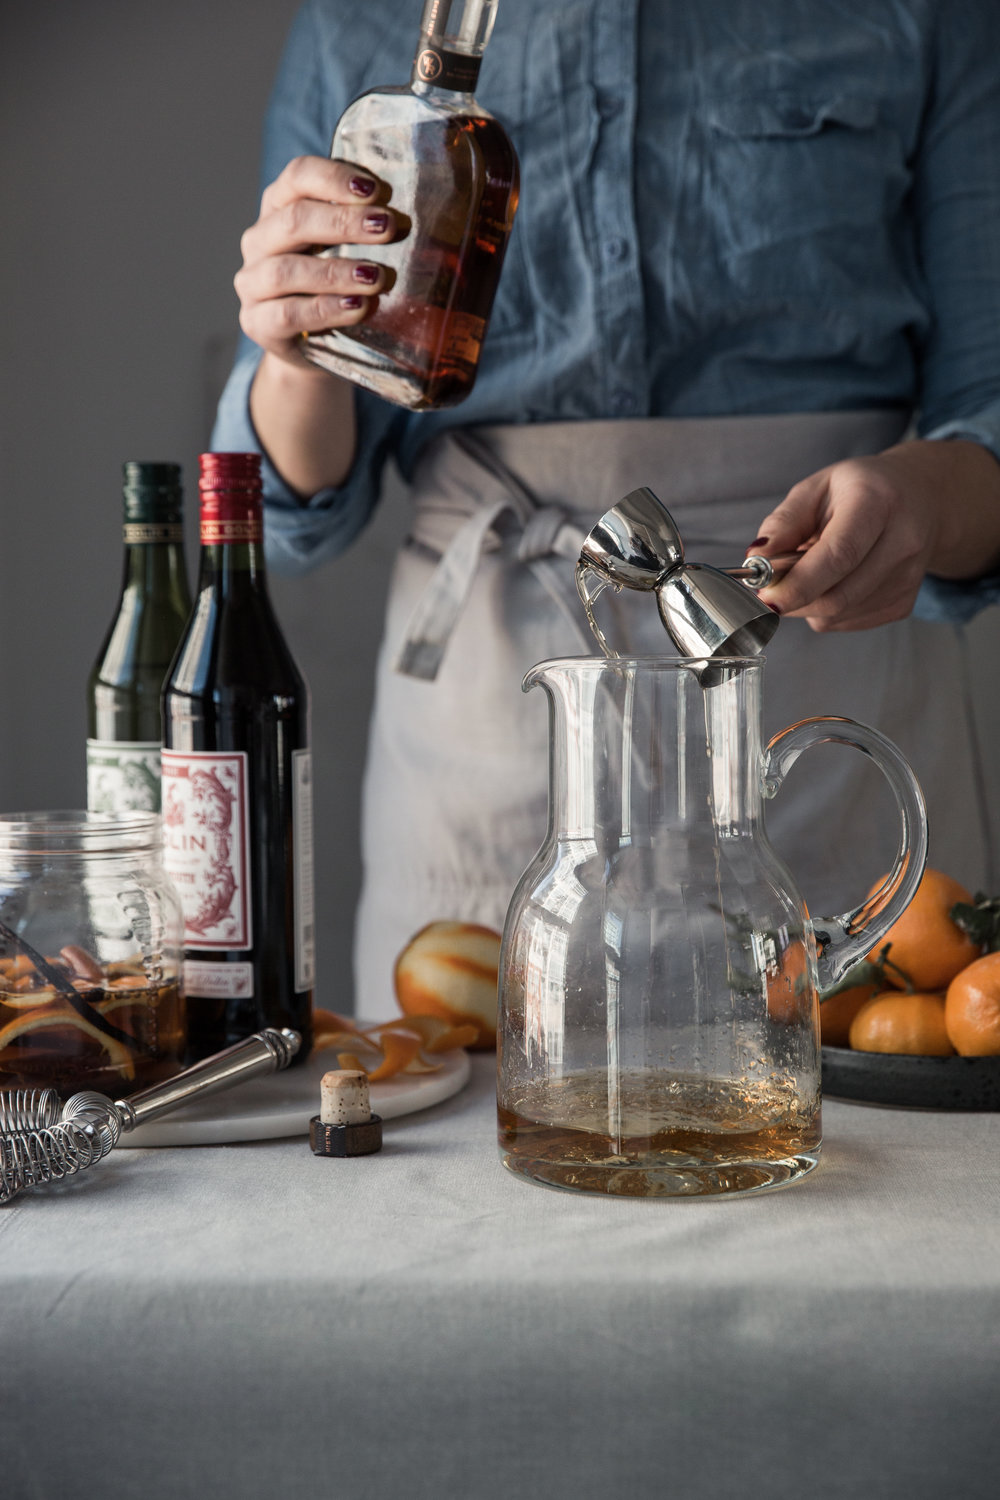 TOAST_HolidayCocktails_LaurenMiller_FoodPhotographer-7525.jpg